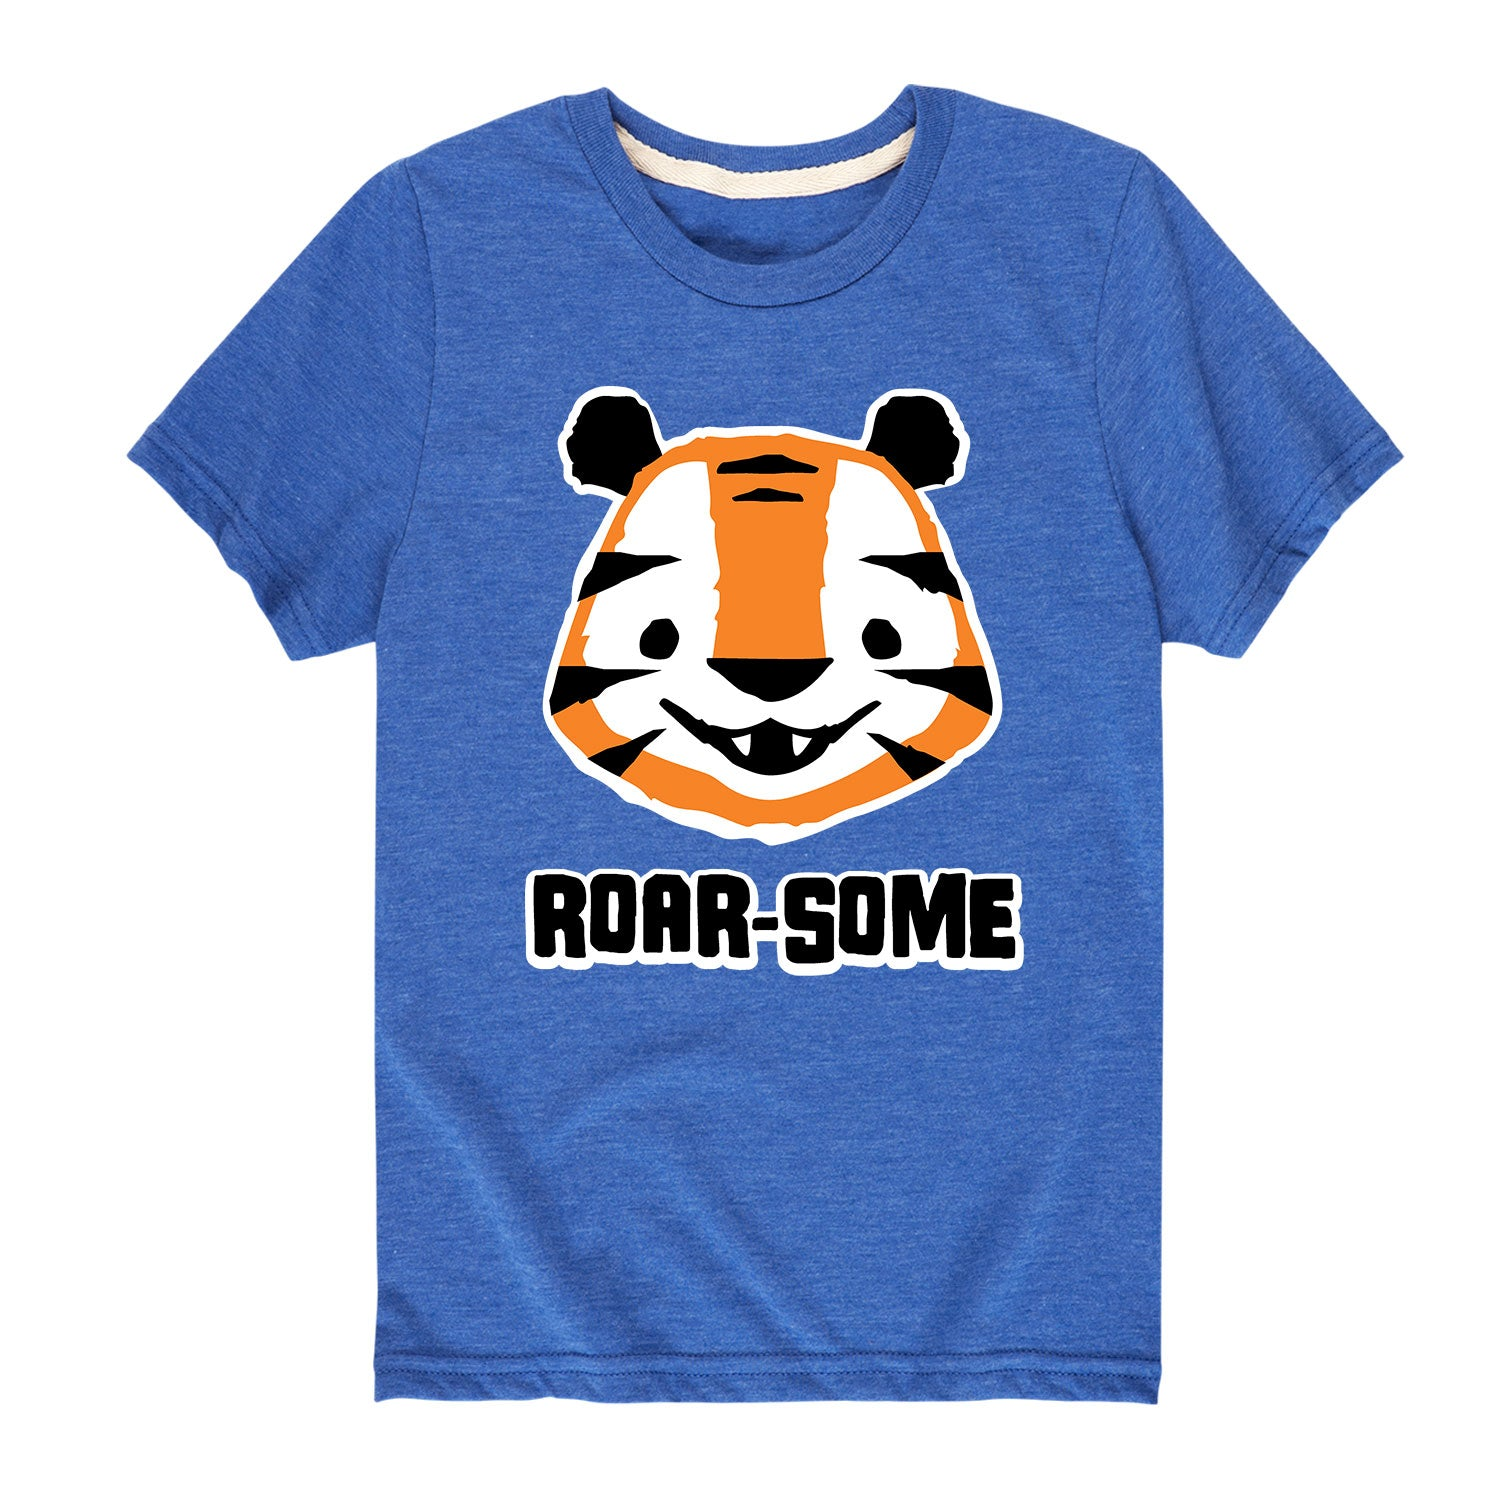 Safari Squad - Toddler Short Sleeve T-Shirt